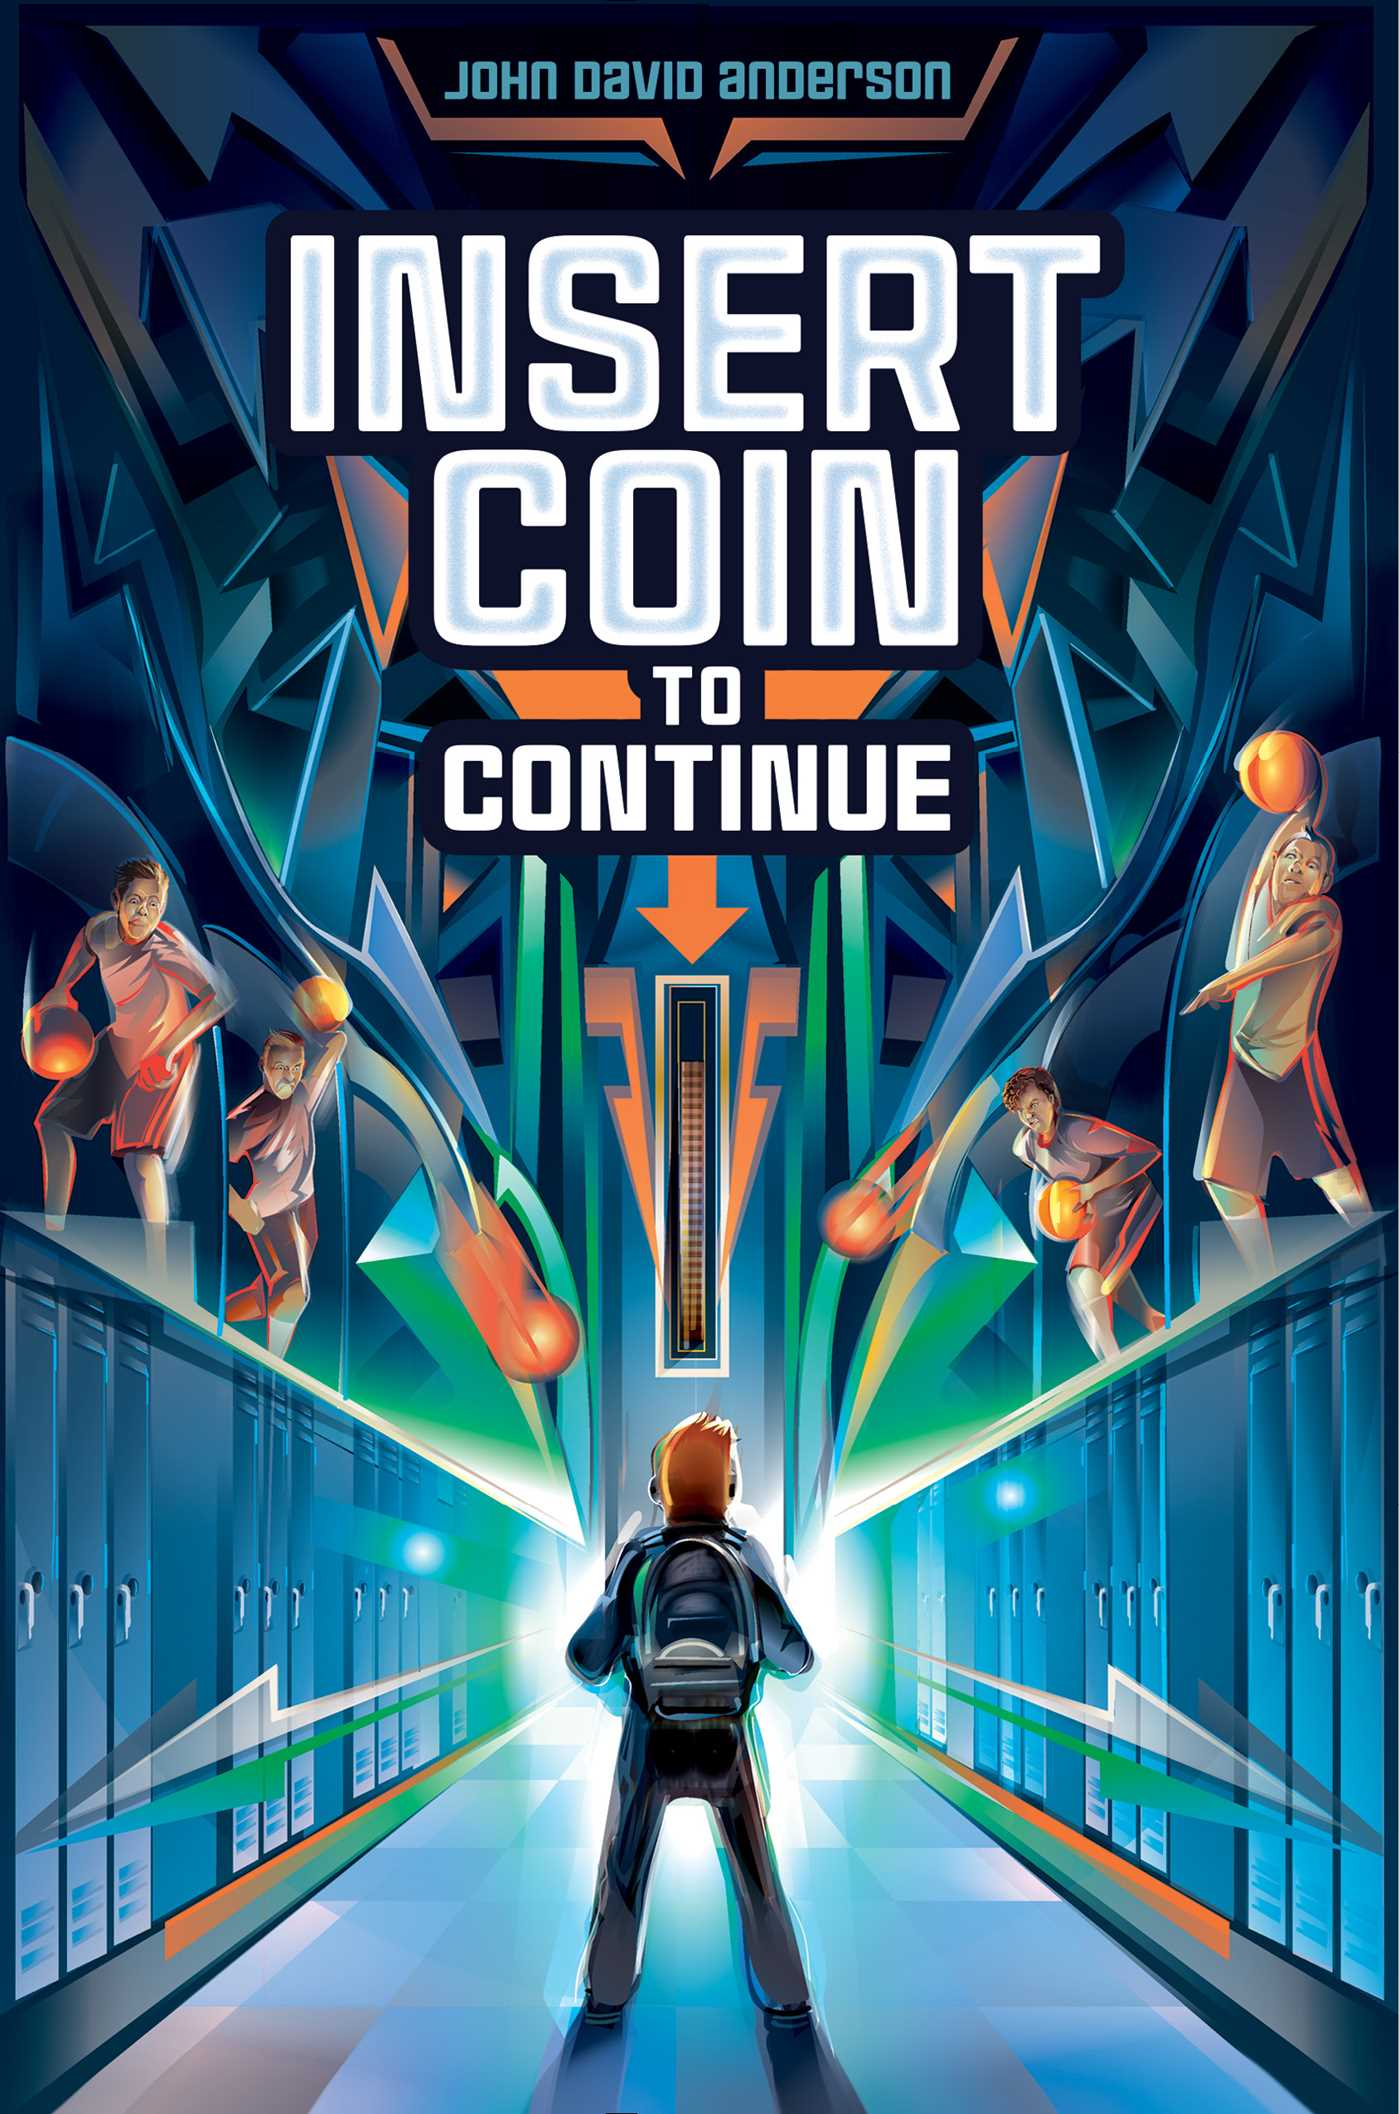 insert-coin-to-continue-9781481447041_hr.jpg